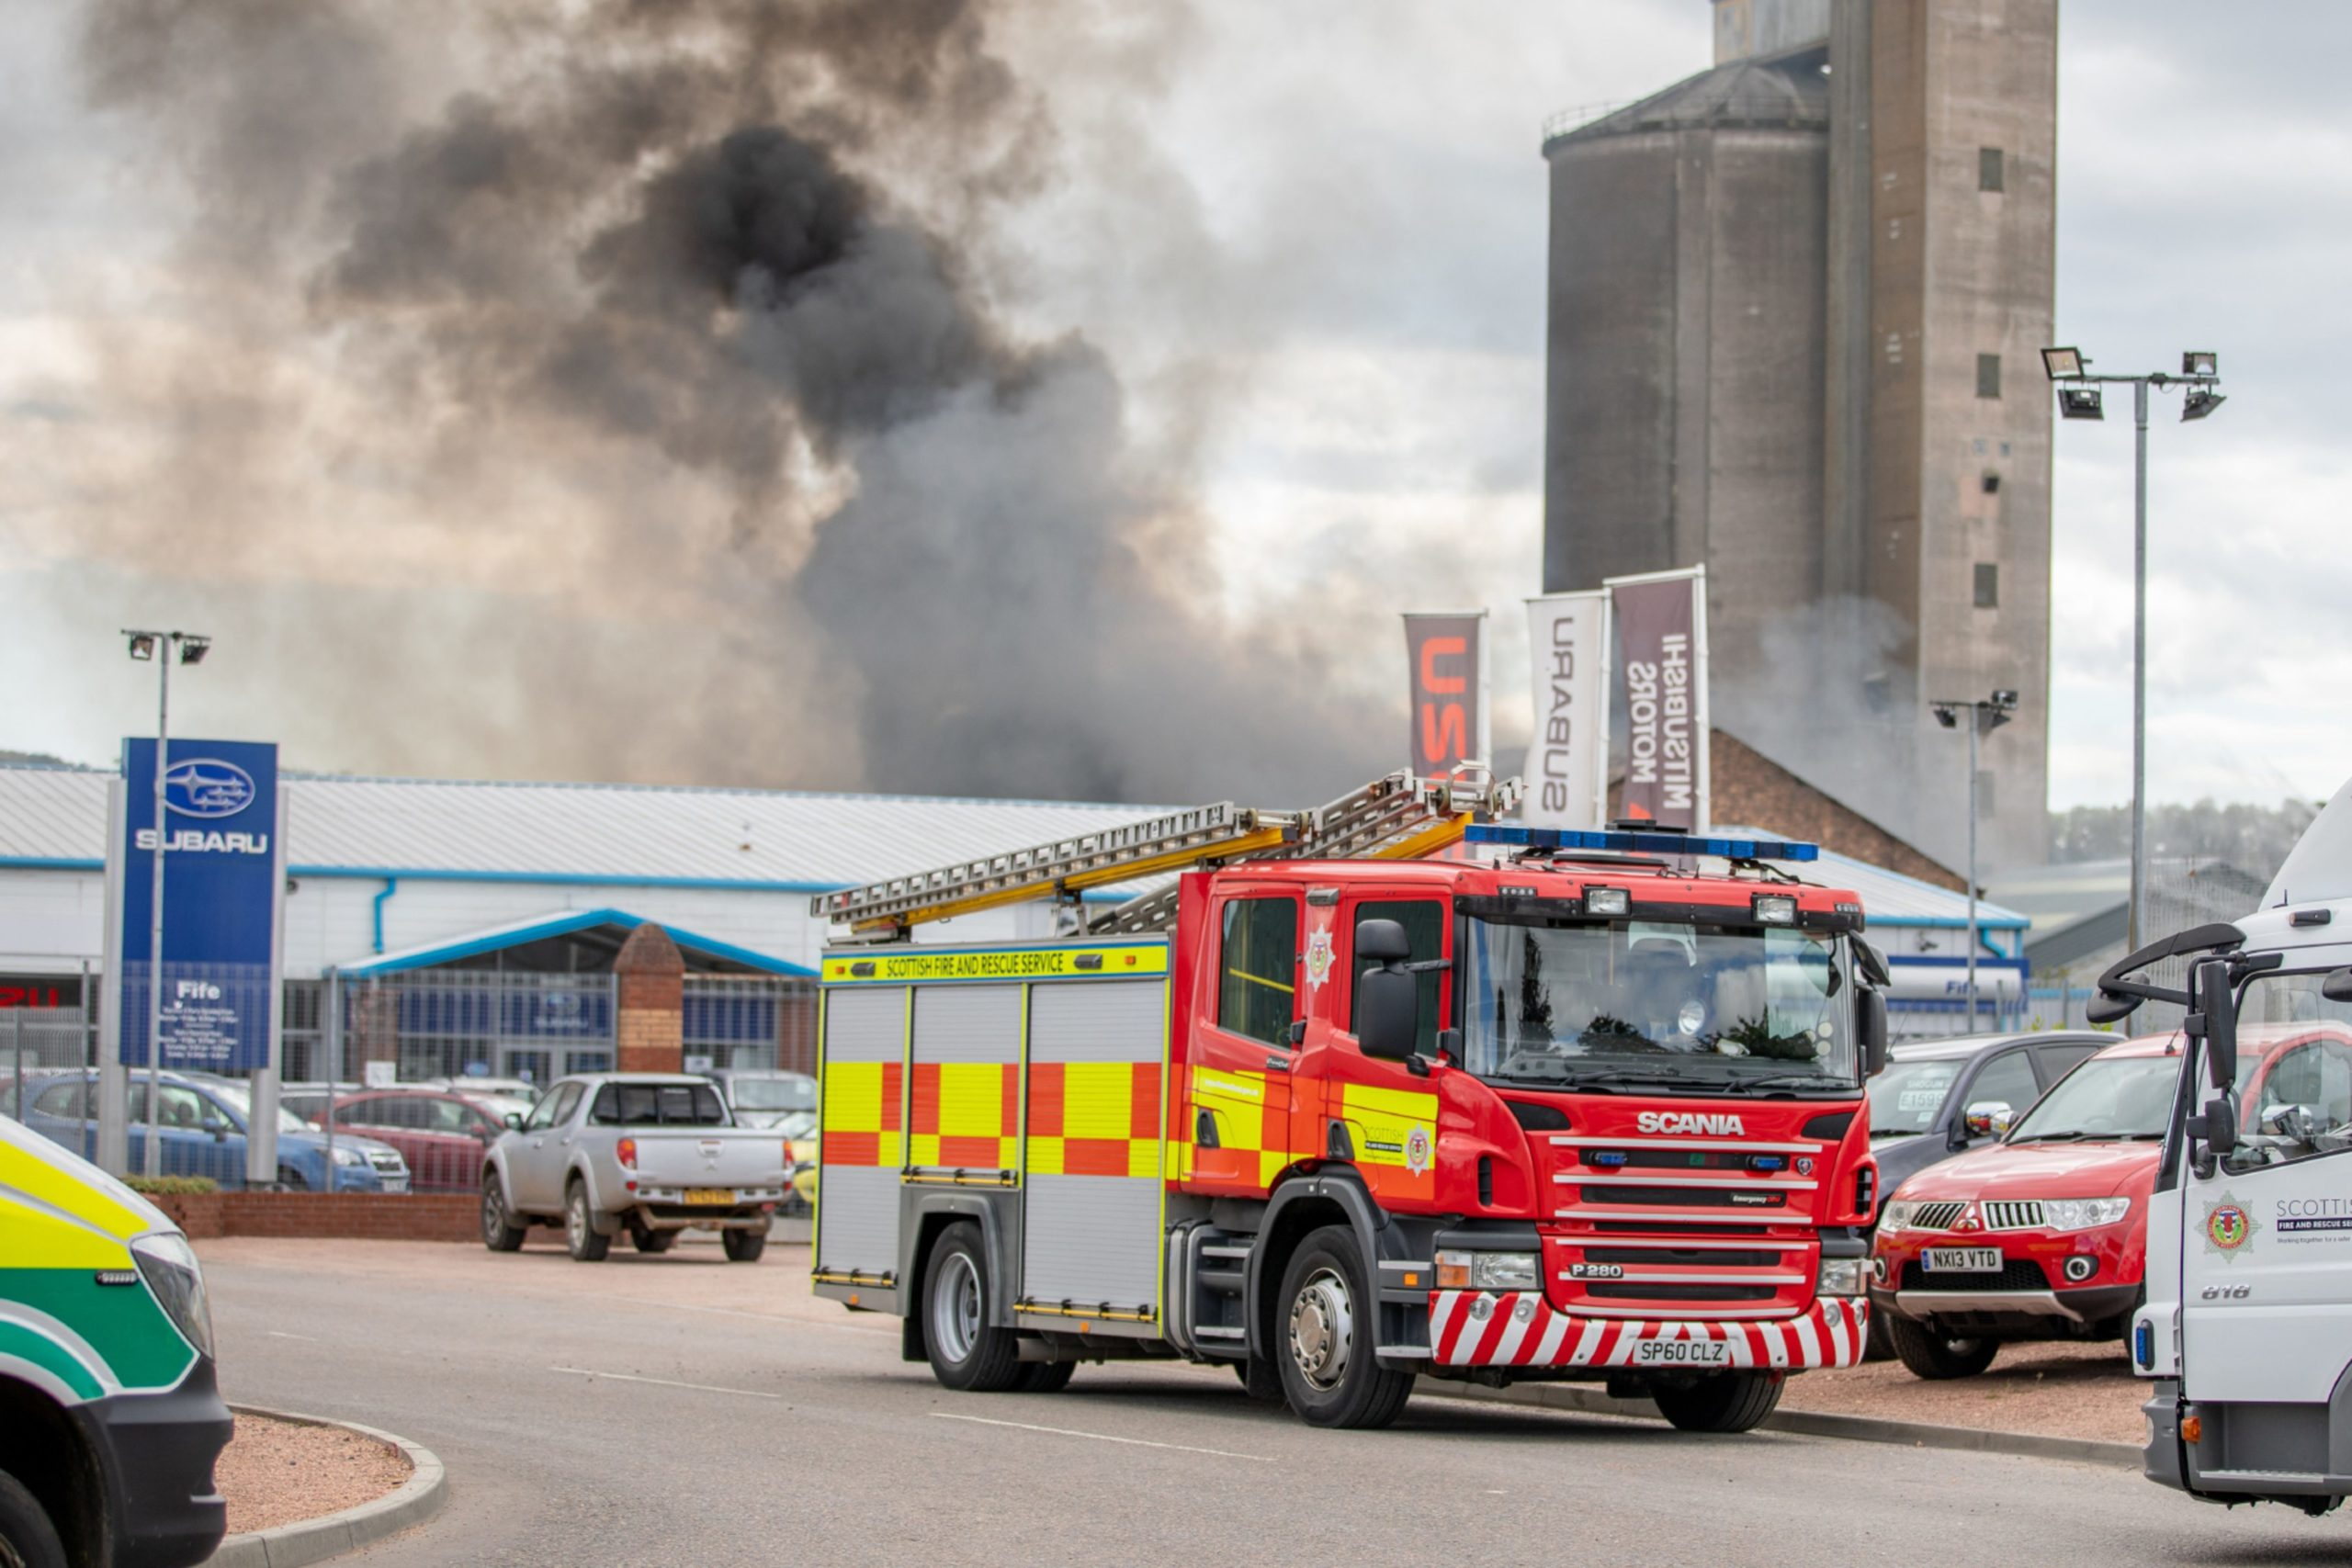 Fire crews were called to Aberhill Metals, which is a stone's throw from Gray Fabrication, on July 21.